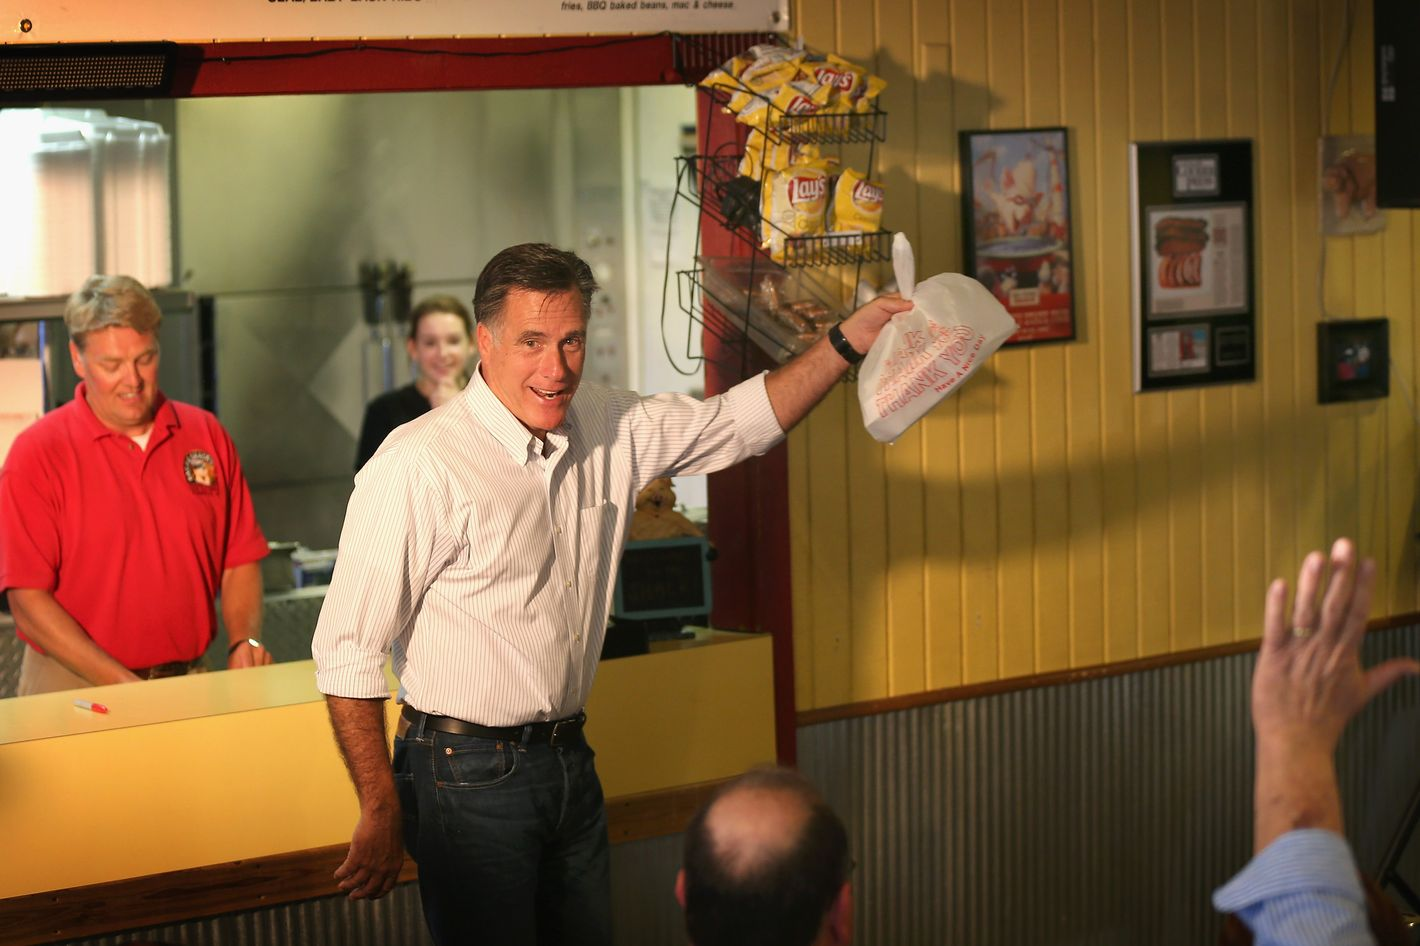 EVANSVILLE, IN - AUGUST 04:  Republican presidential candidate and former Massachusetts Gov. Mitt Romney (C) grabs a bag of food before leaving a campaign event at Stepto's Bar B Q Shack on August 4, 2012 in Evansville, Indiana. Romney told supporters gathered at the restaurant that the latest jobs report was evidence that Obama's economic policies were not working.  (Photo by Scott Olson/Getty Images)